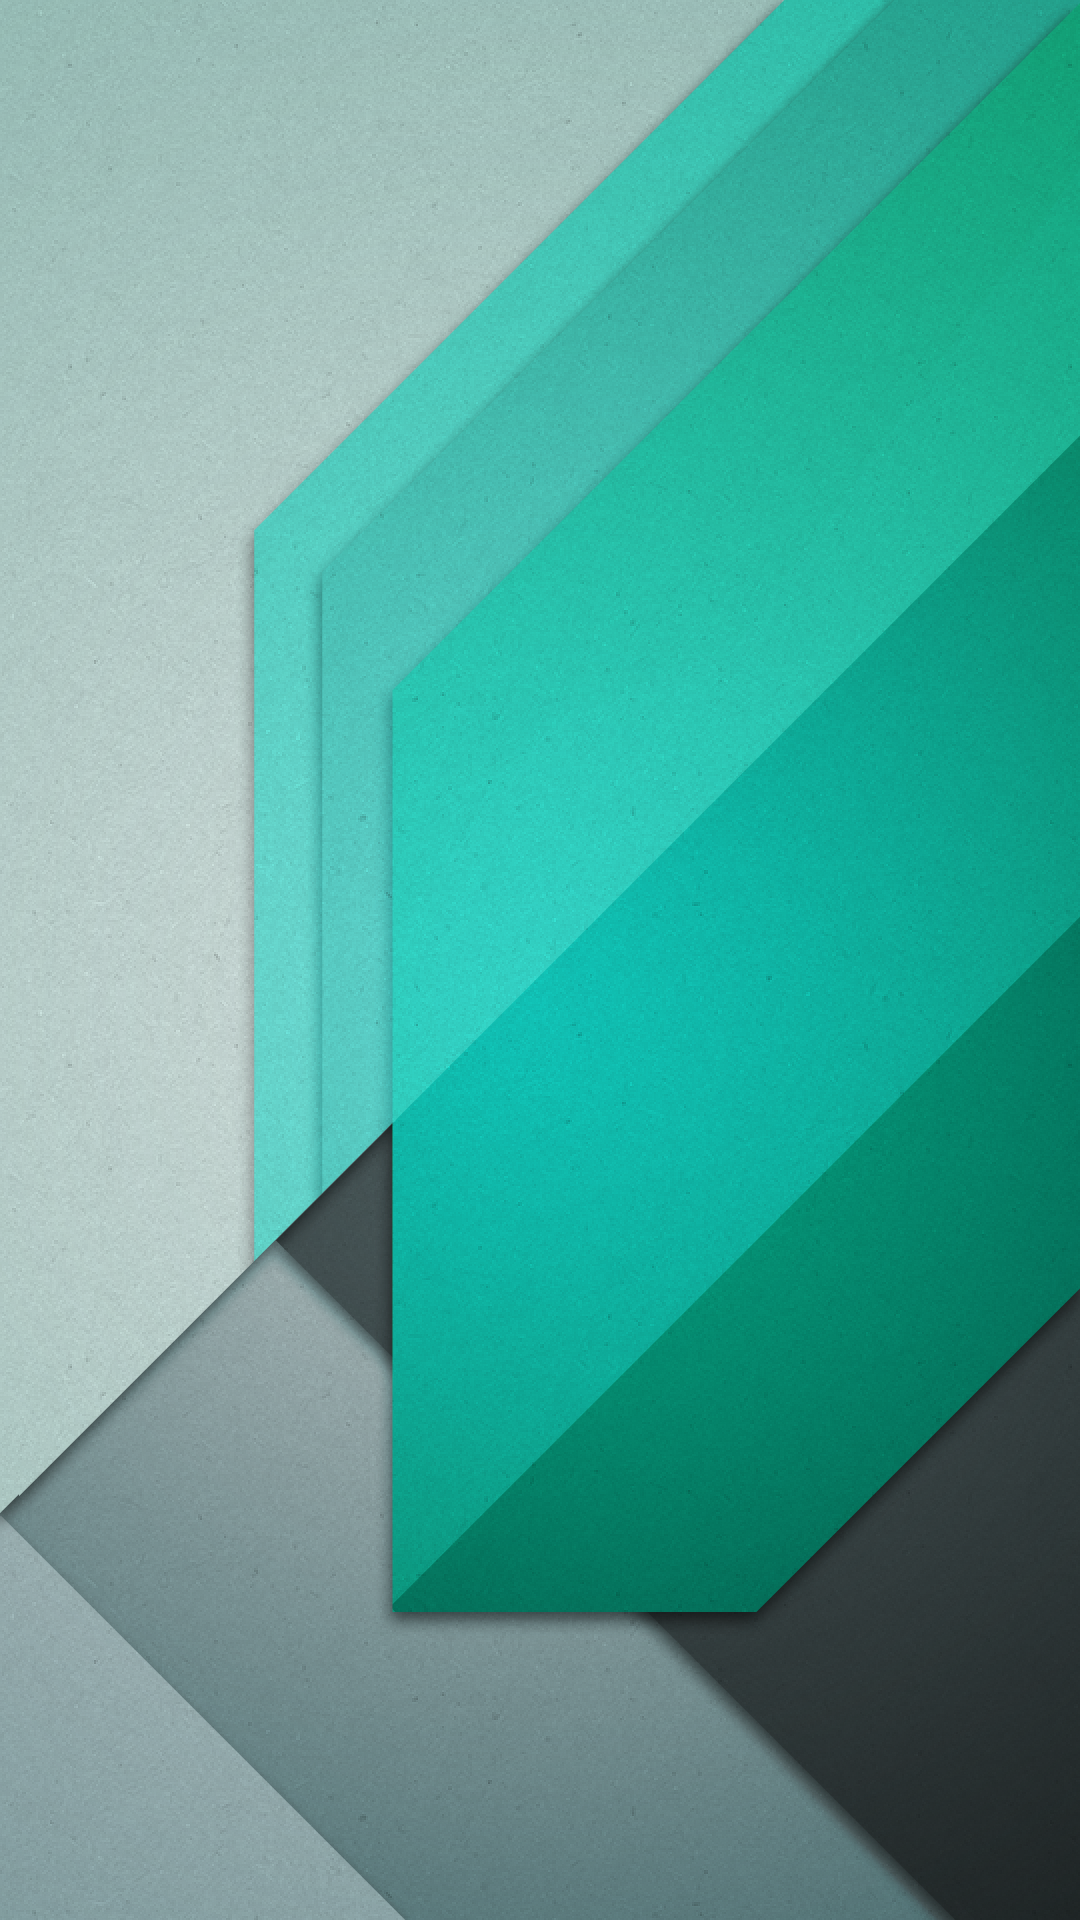 abo hani android 6 0 marshmallow inspired wallpapers collection